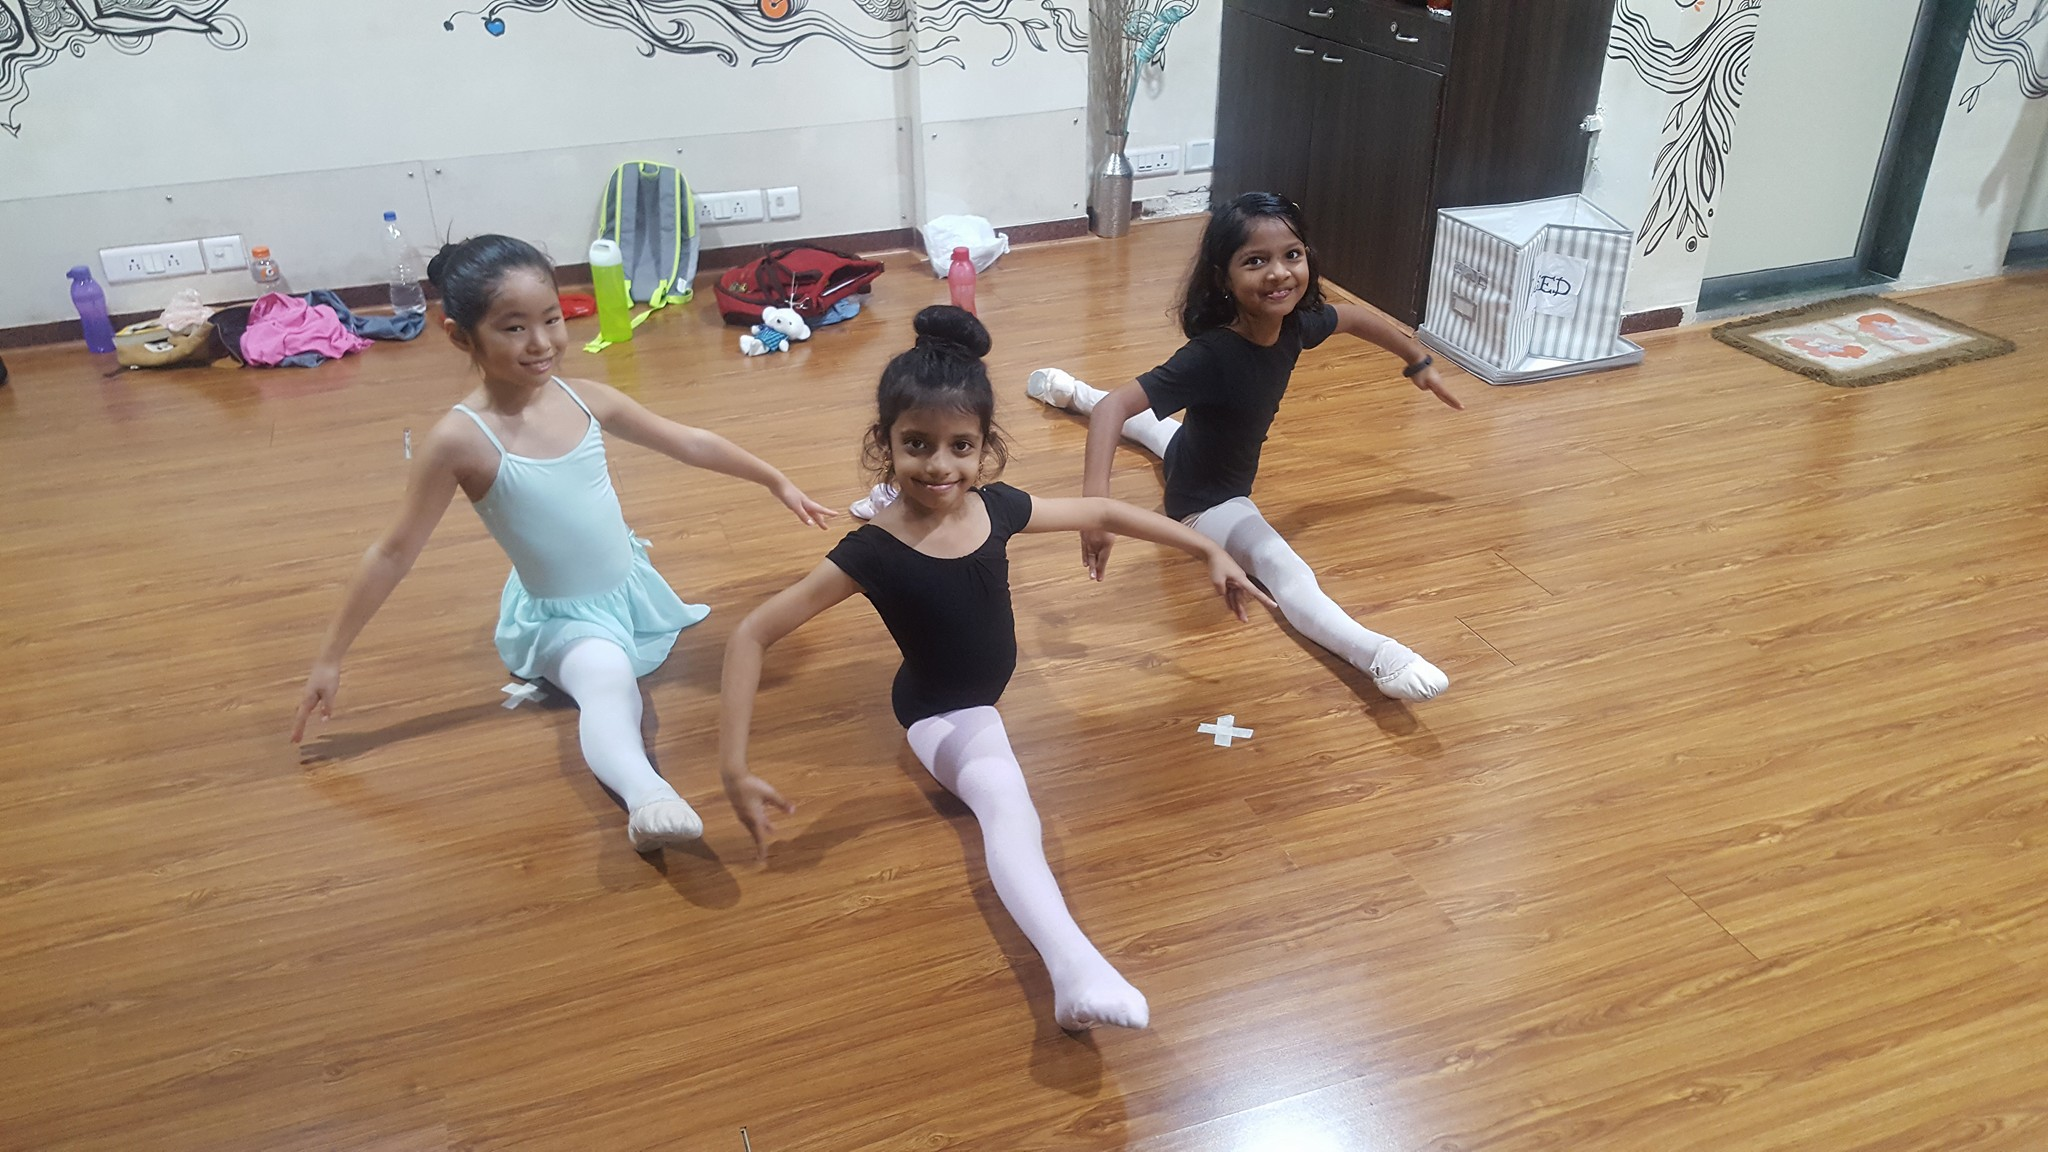 Her students in India – including these three girls from Powai – are very eager to learn ballet, says Czarina. Photo courtesy of Czarina Villegas' Facebook page